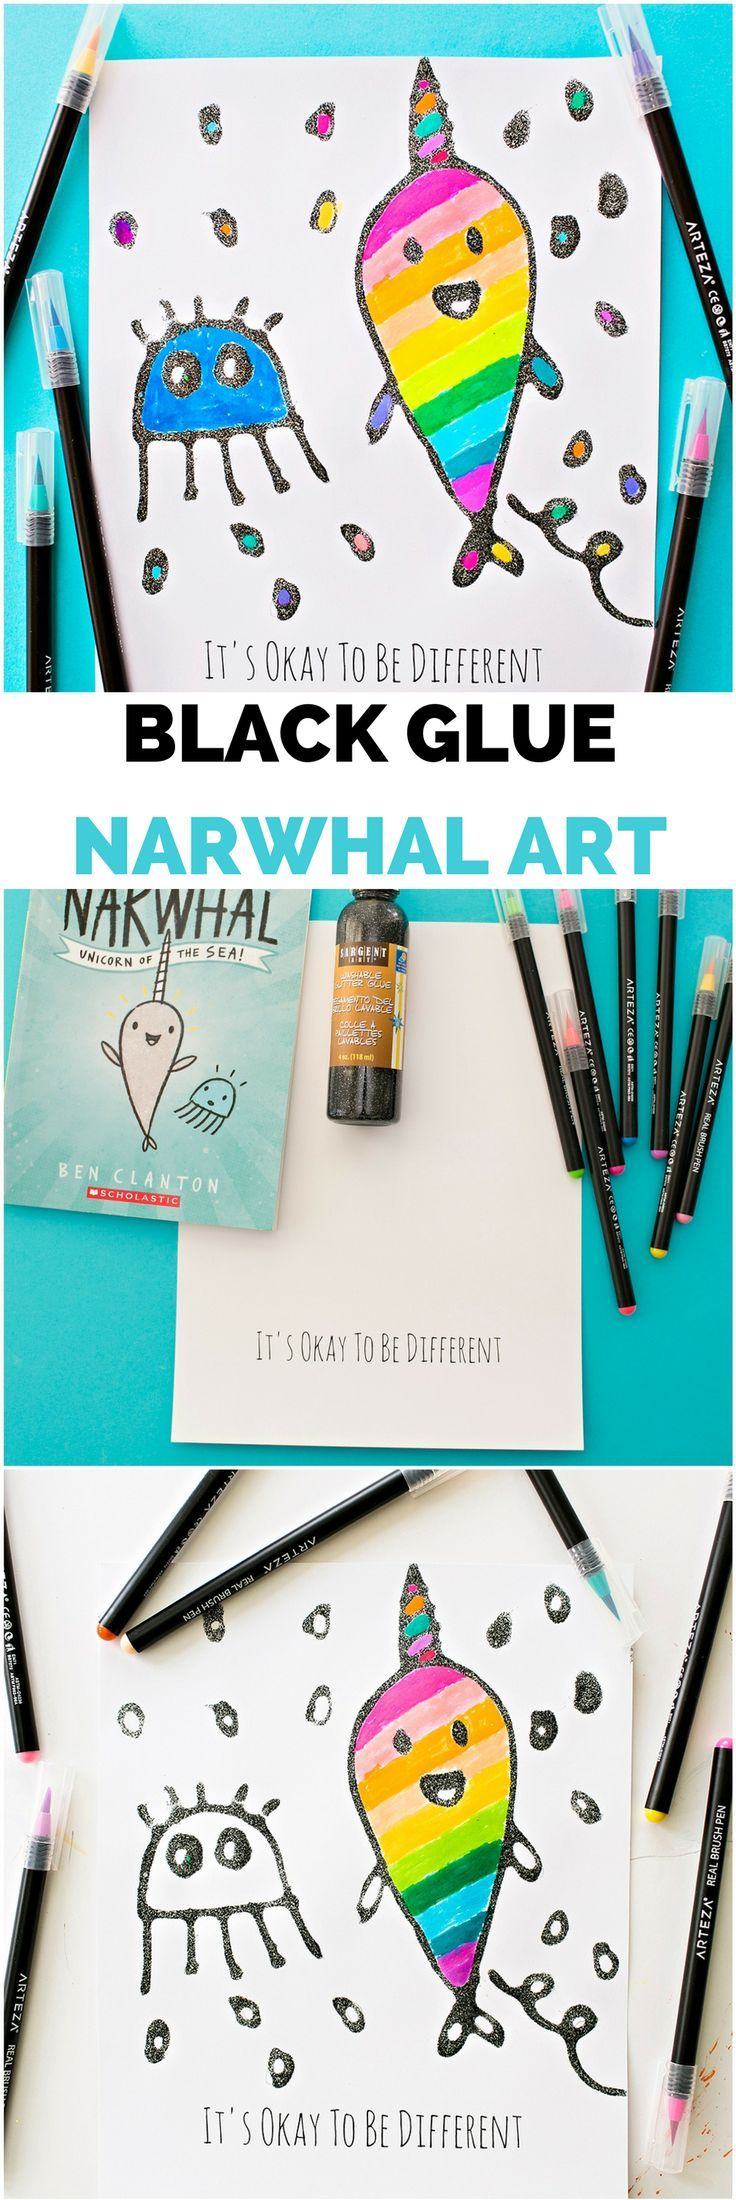 Black Glue Rainbow Narwhal art for kids. What a cute ocean or sea craft! Inspired by Narwhal and Jelly children's book.